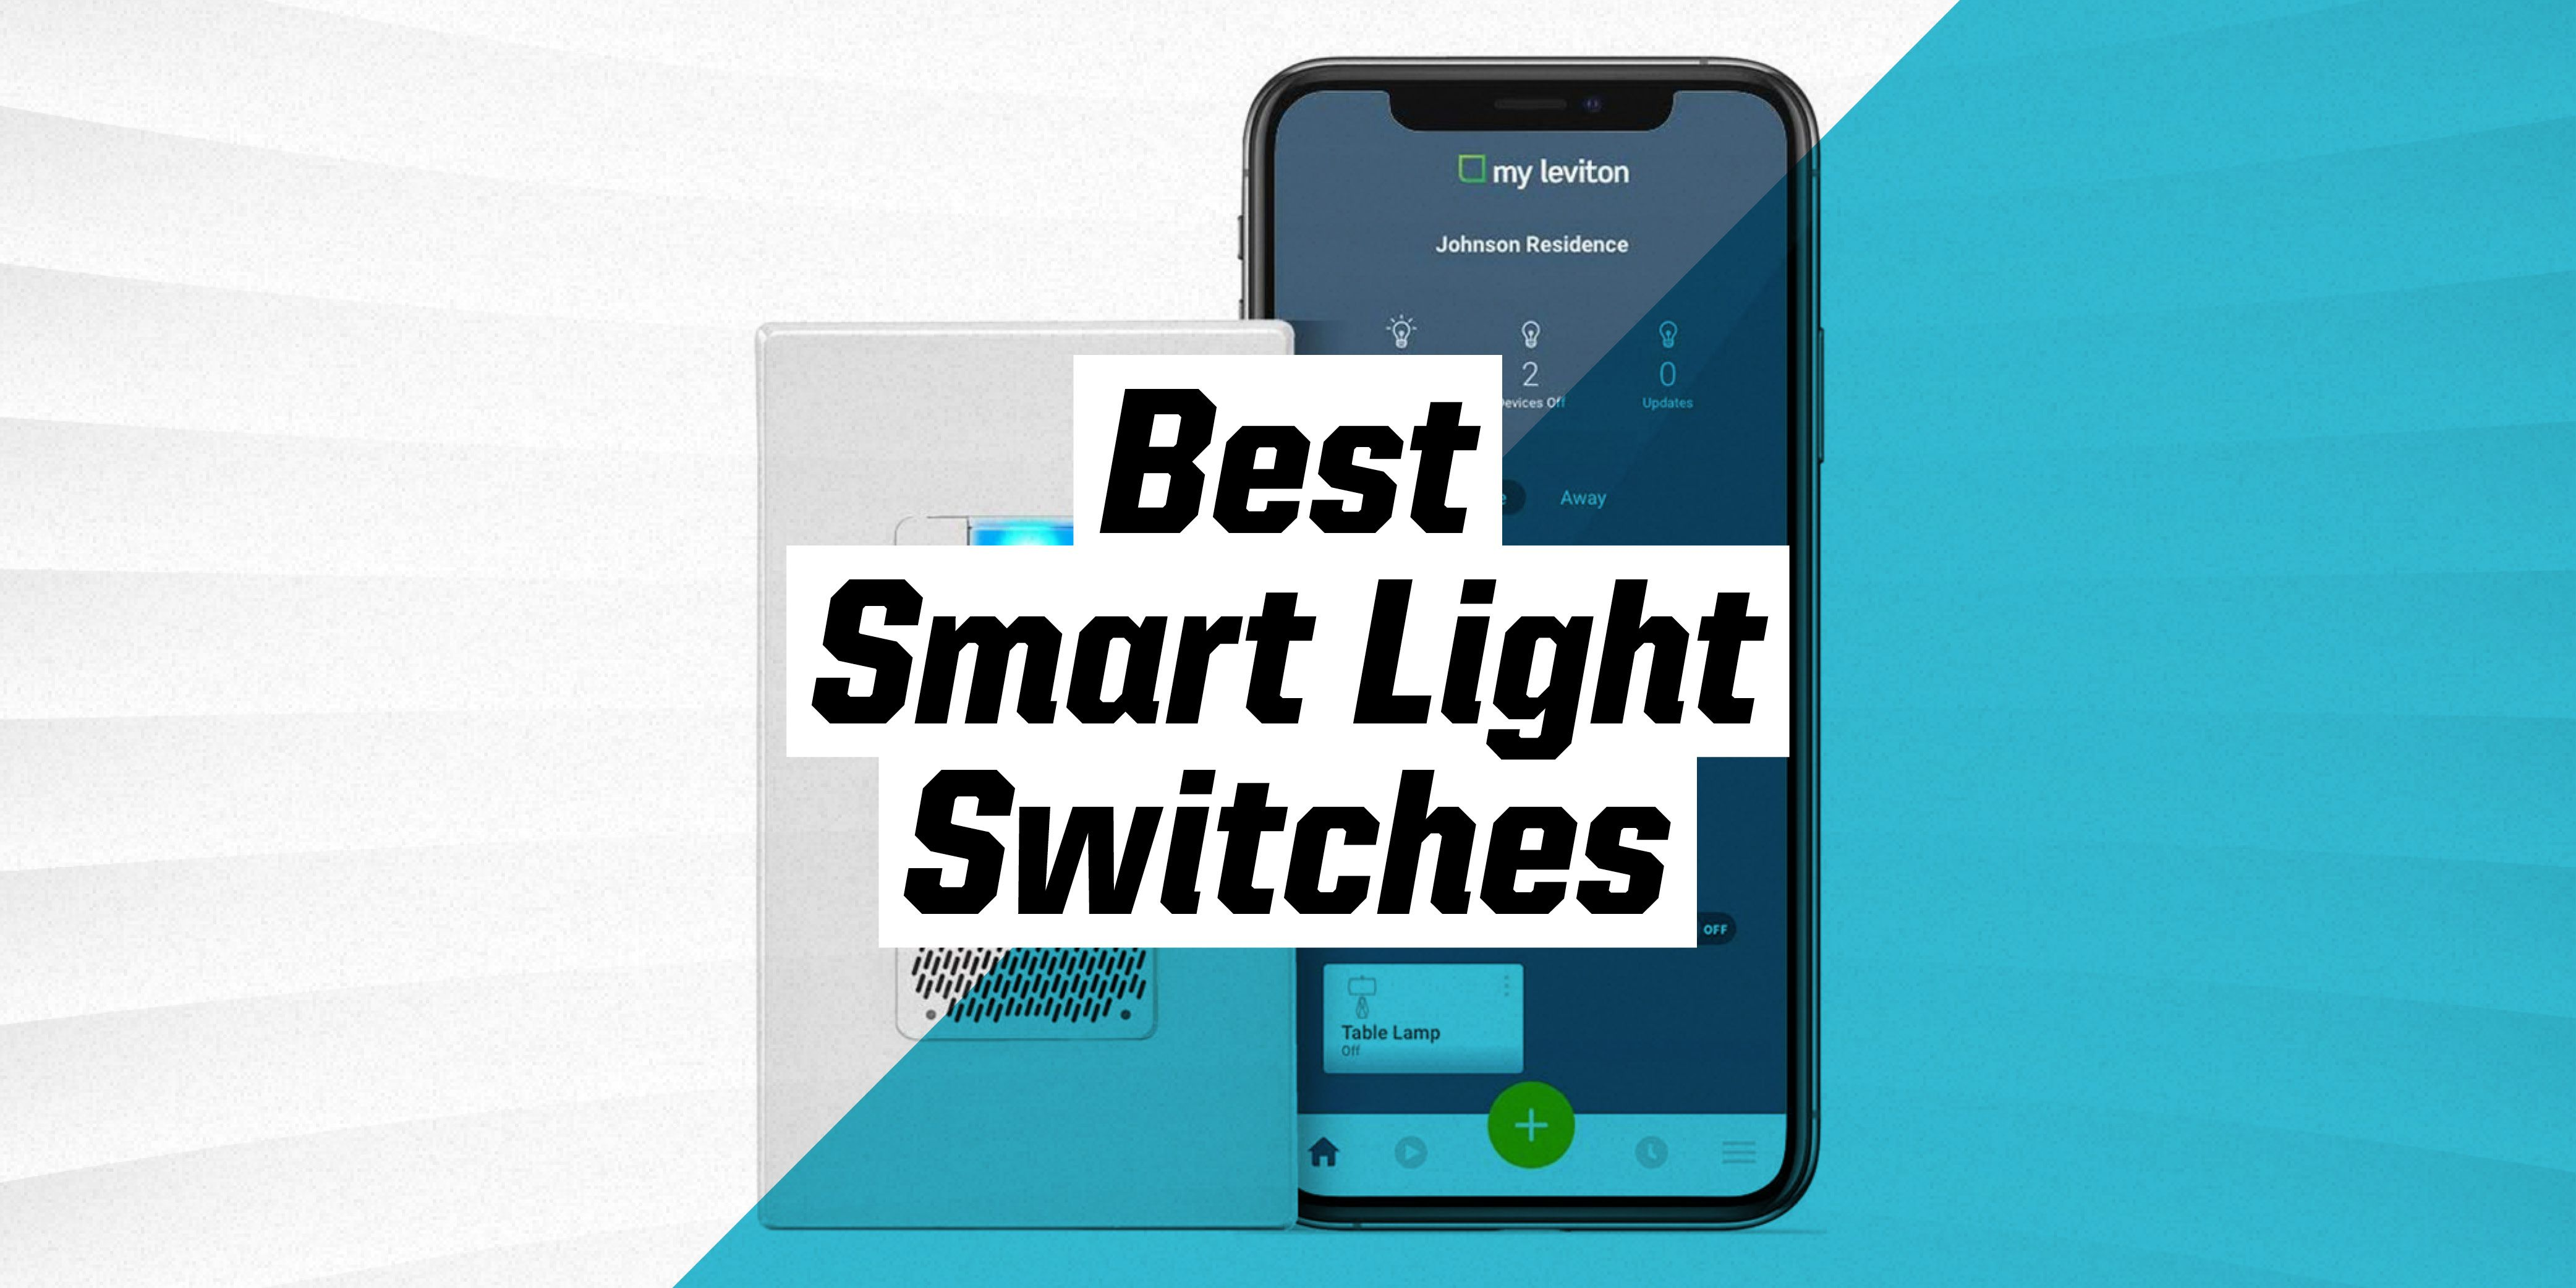 The Best Smart Light Switches for Your Home